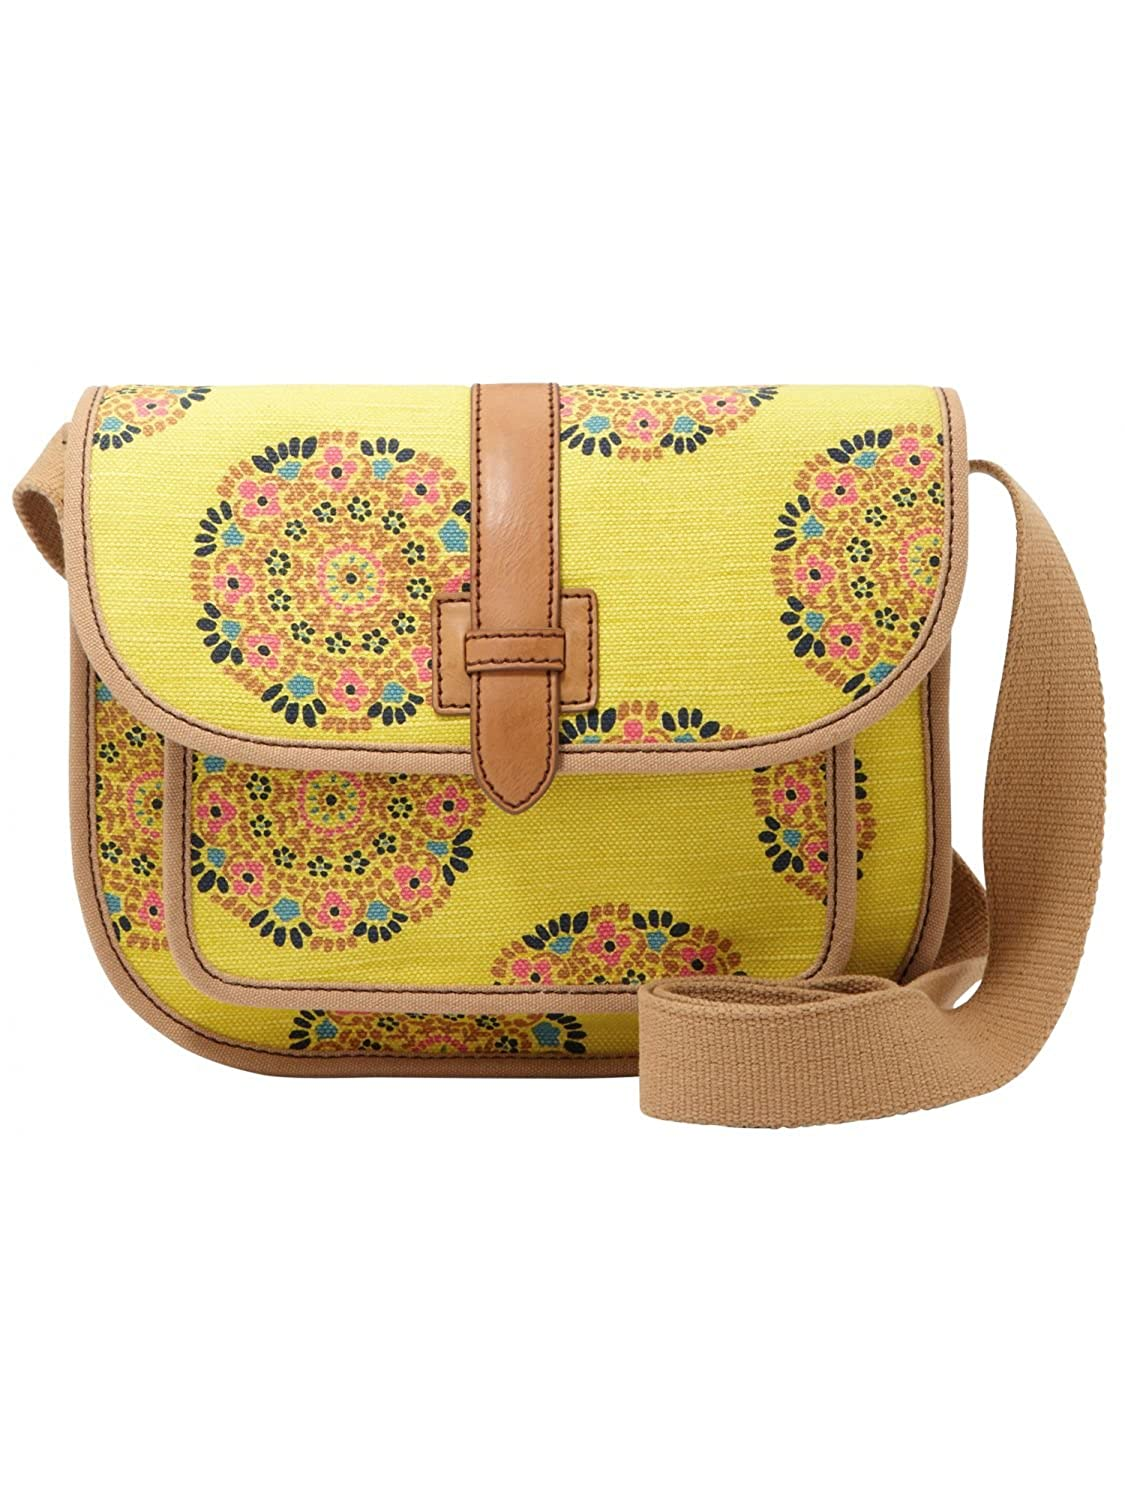 Fossil ZB5686 Shay Flap Damentasche Floral: